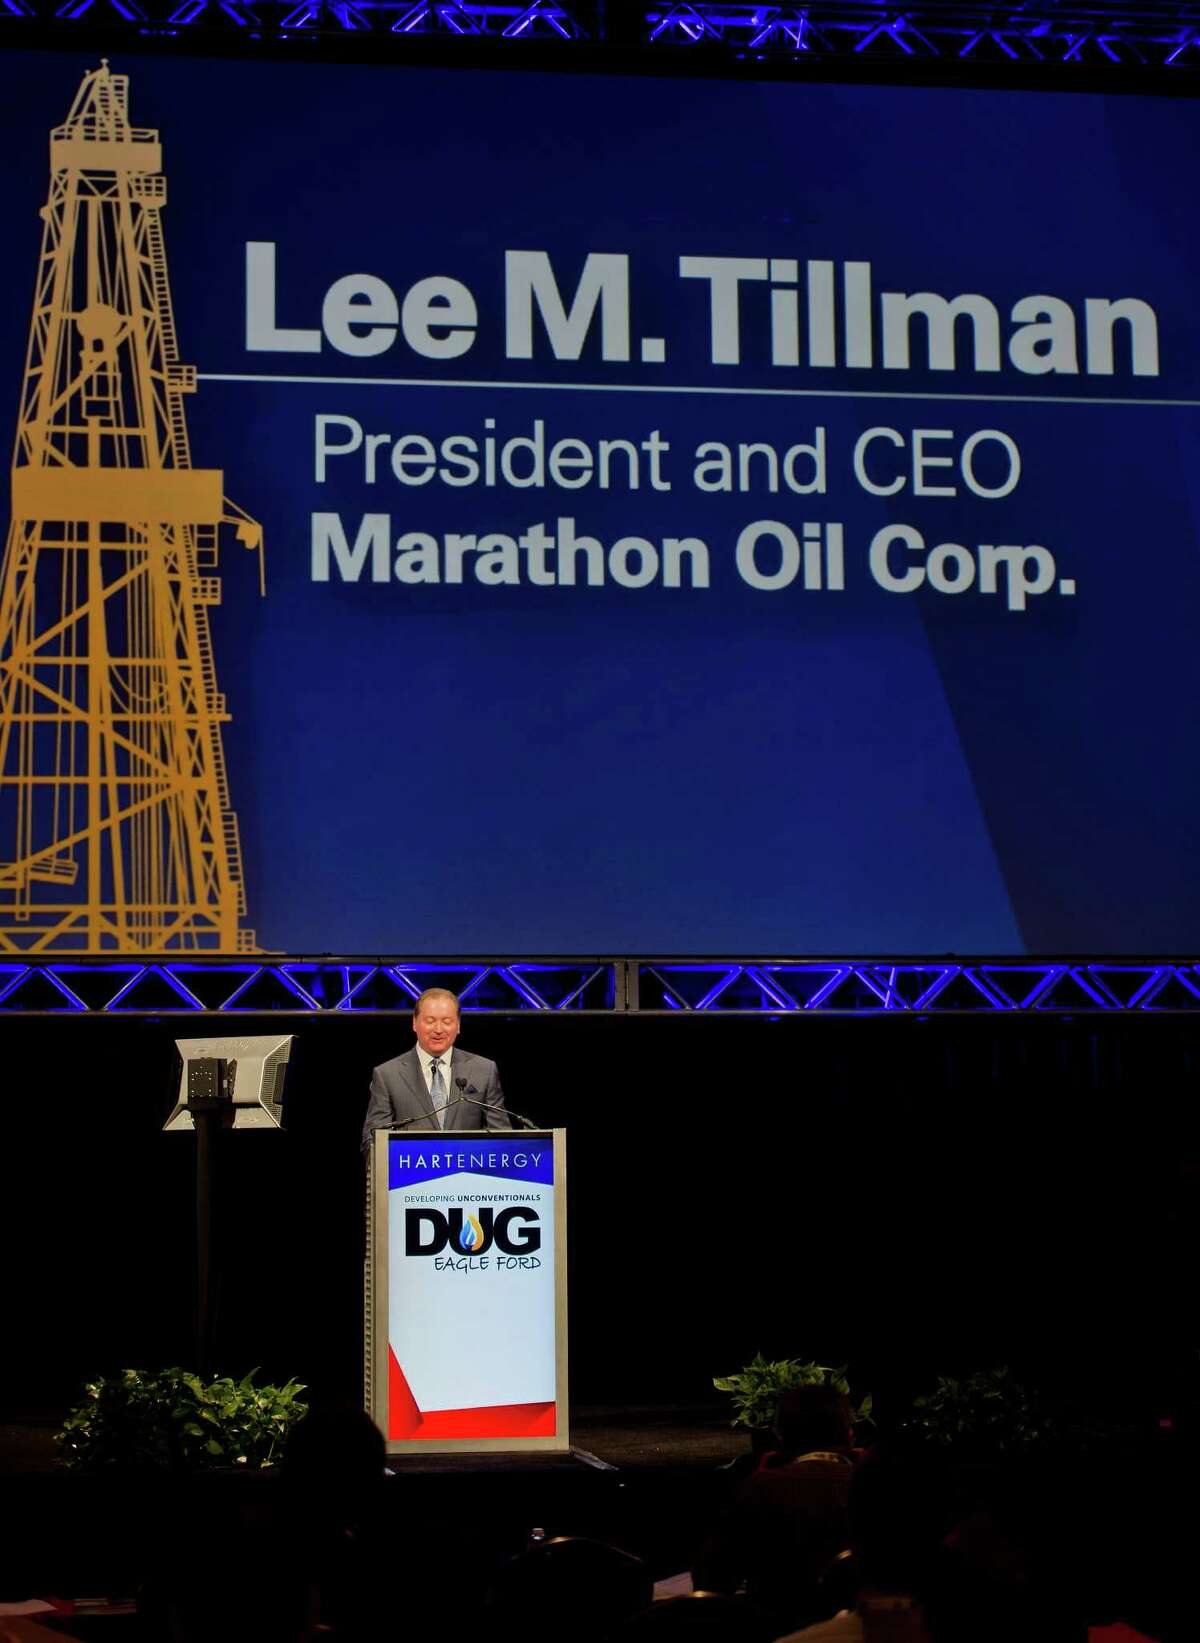 Lee M. Tillman, president and chief executive officer of Marathon Oil Corp., speaks during the Hart Energy DUG Eagle Ford Shale conference in San Antonio, Texas, U.S., on Tuesday, Sept. 16, 2014. (Photographer: Eddie Seal/Bloomberg)